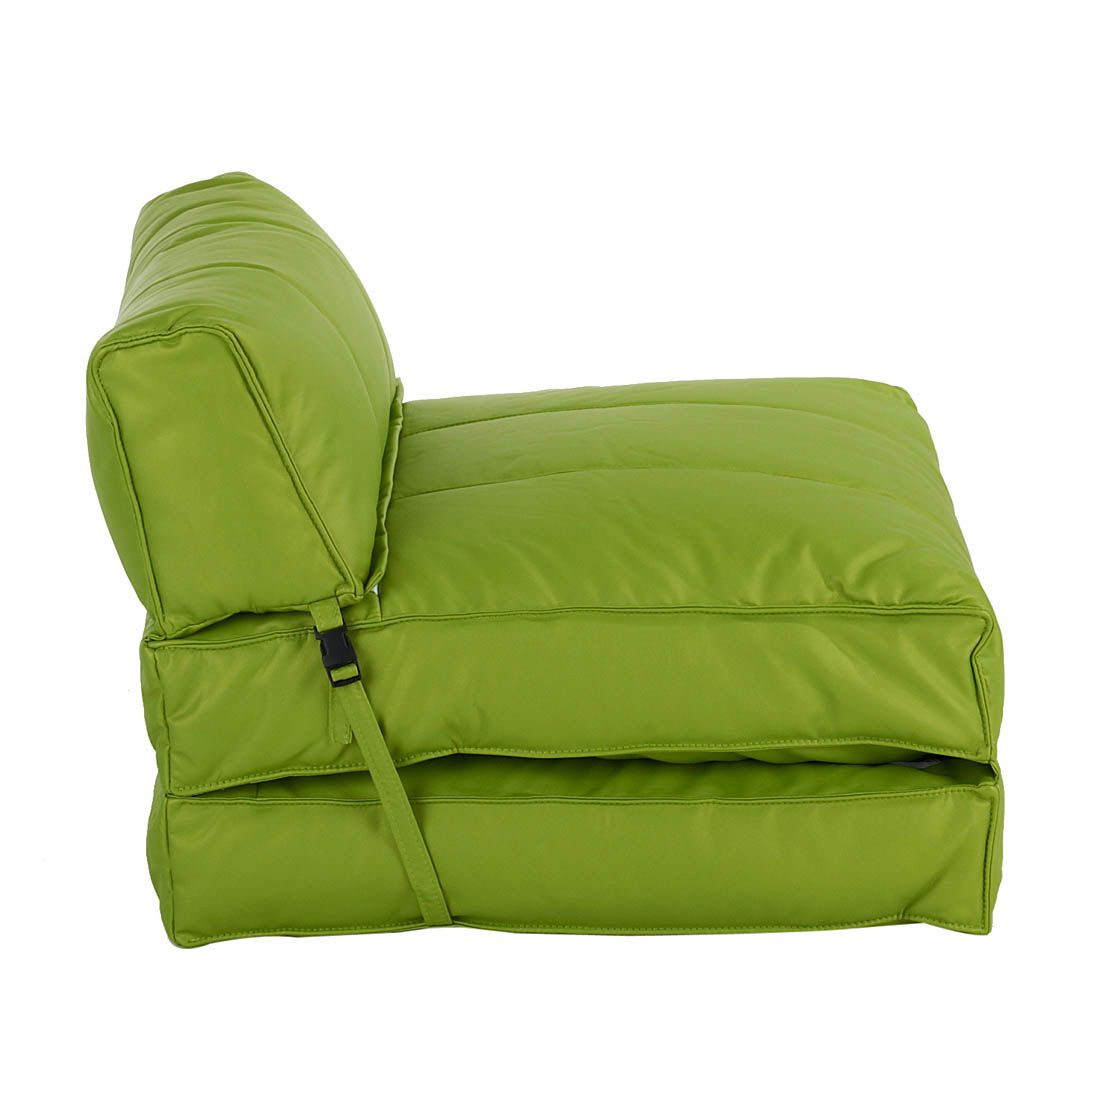 Fauteuil convertible Caneva - Cuir synthétique vert, mooved